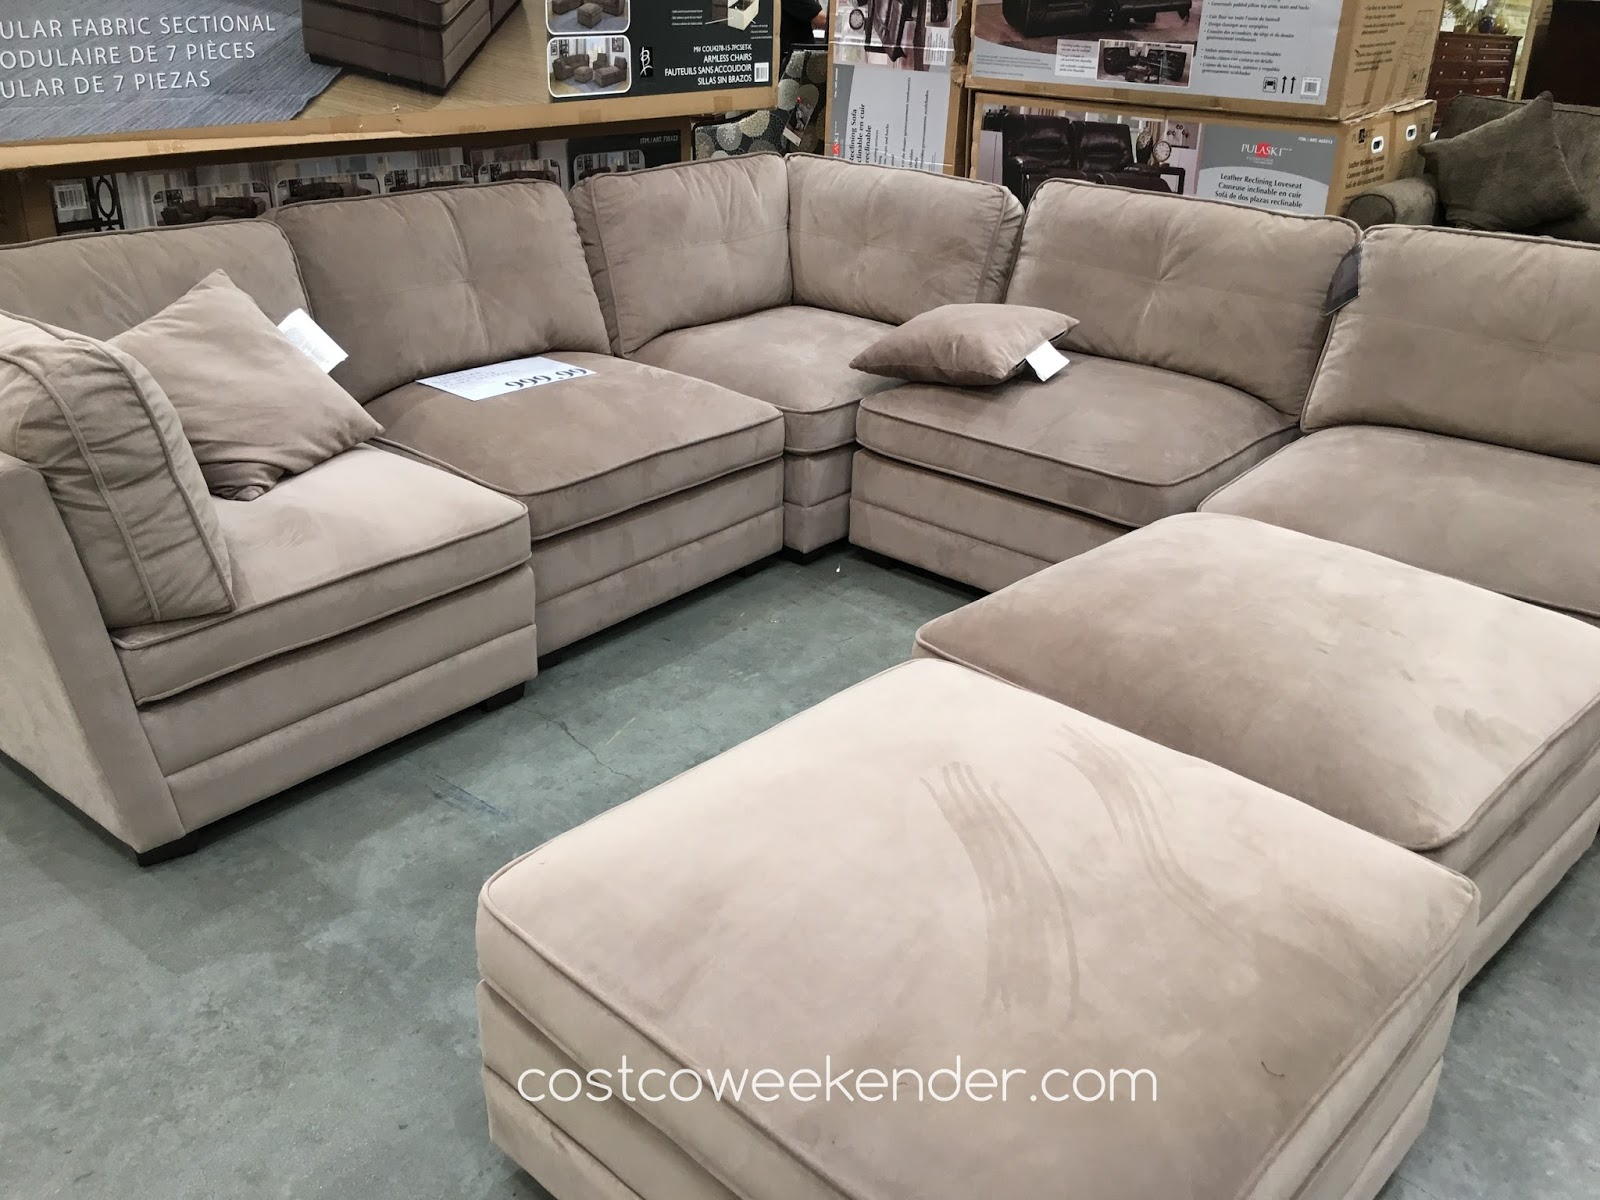 Sofa At Costco Uk Blue Suede Fabric Corner Review Home Co